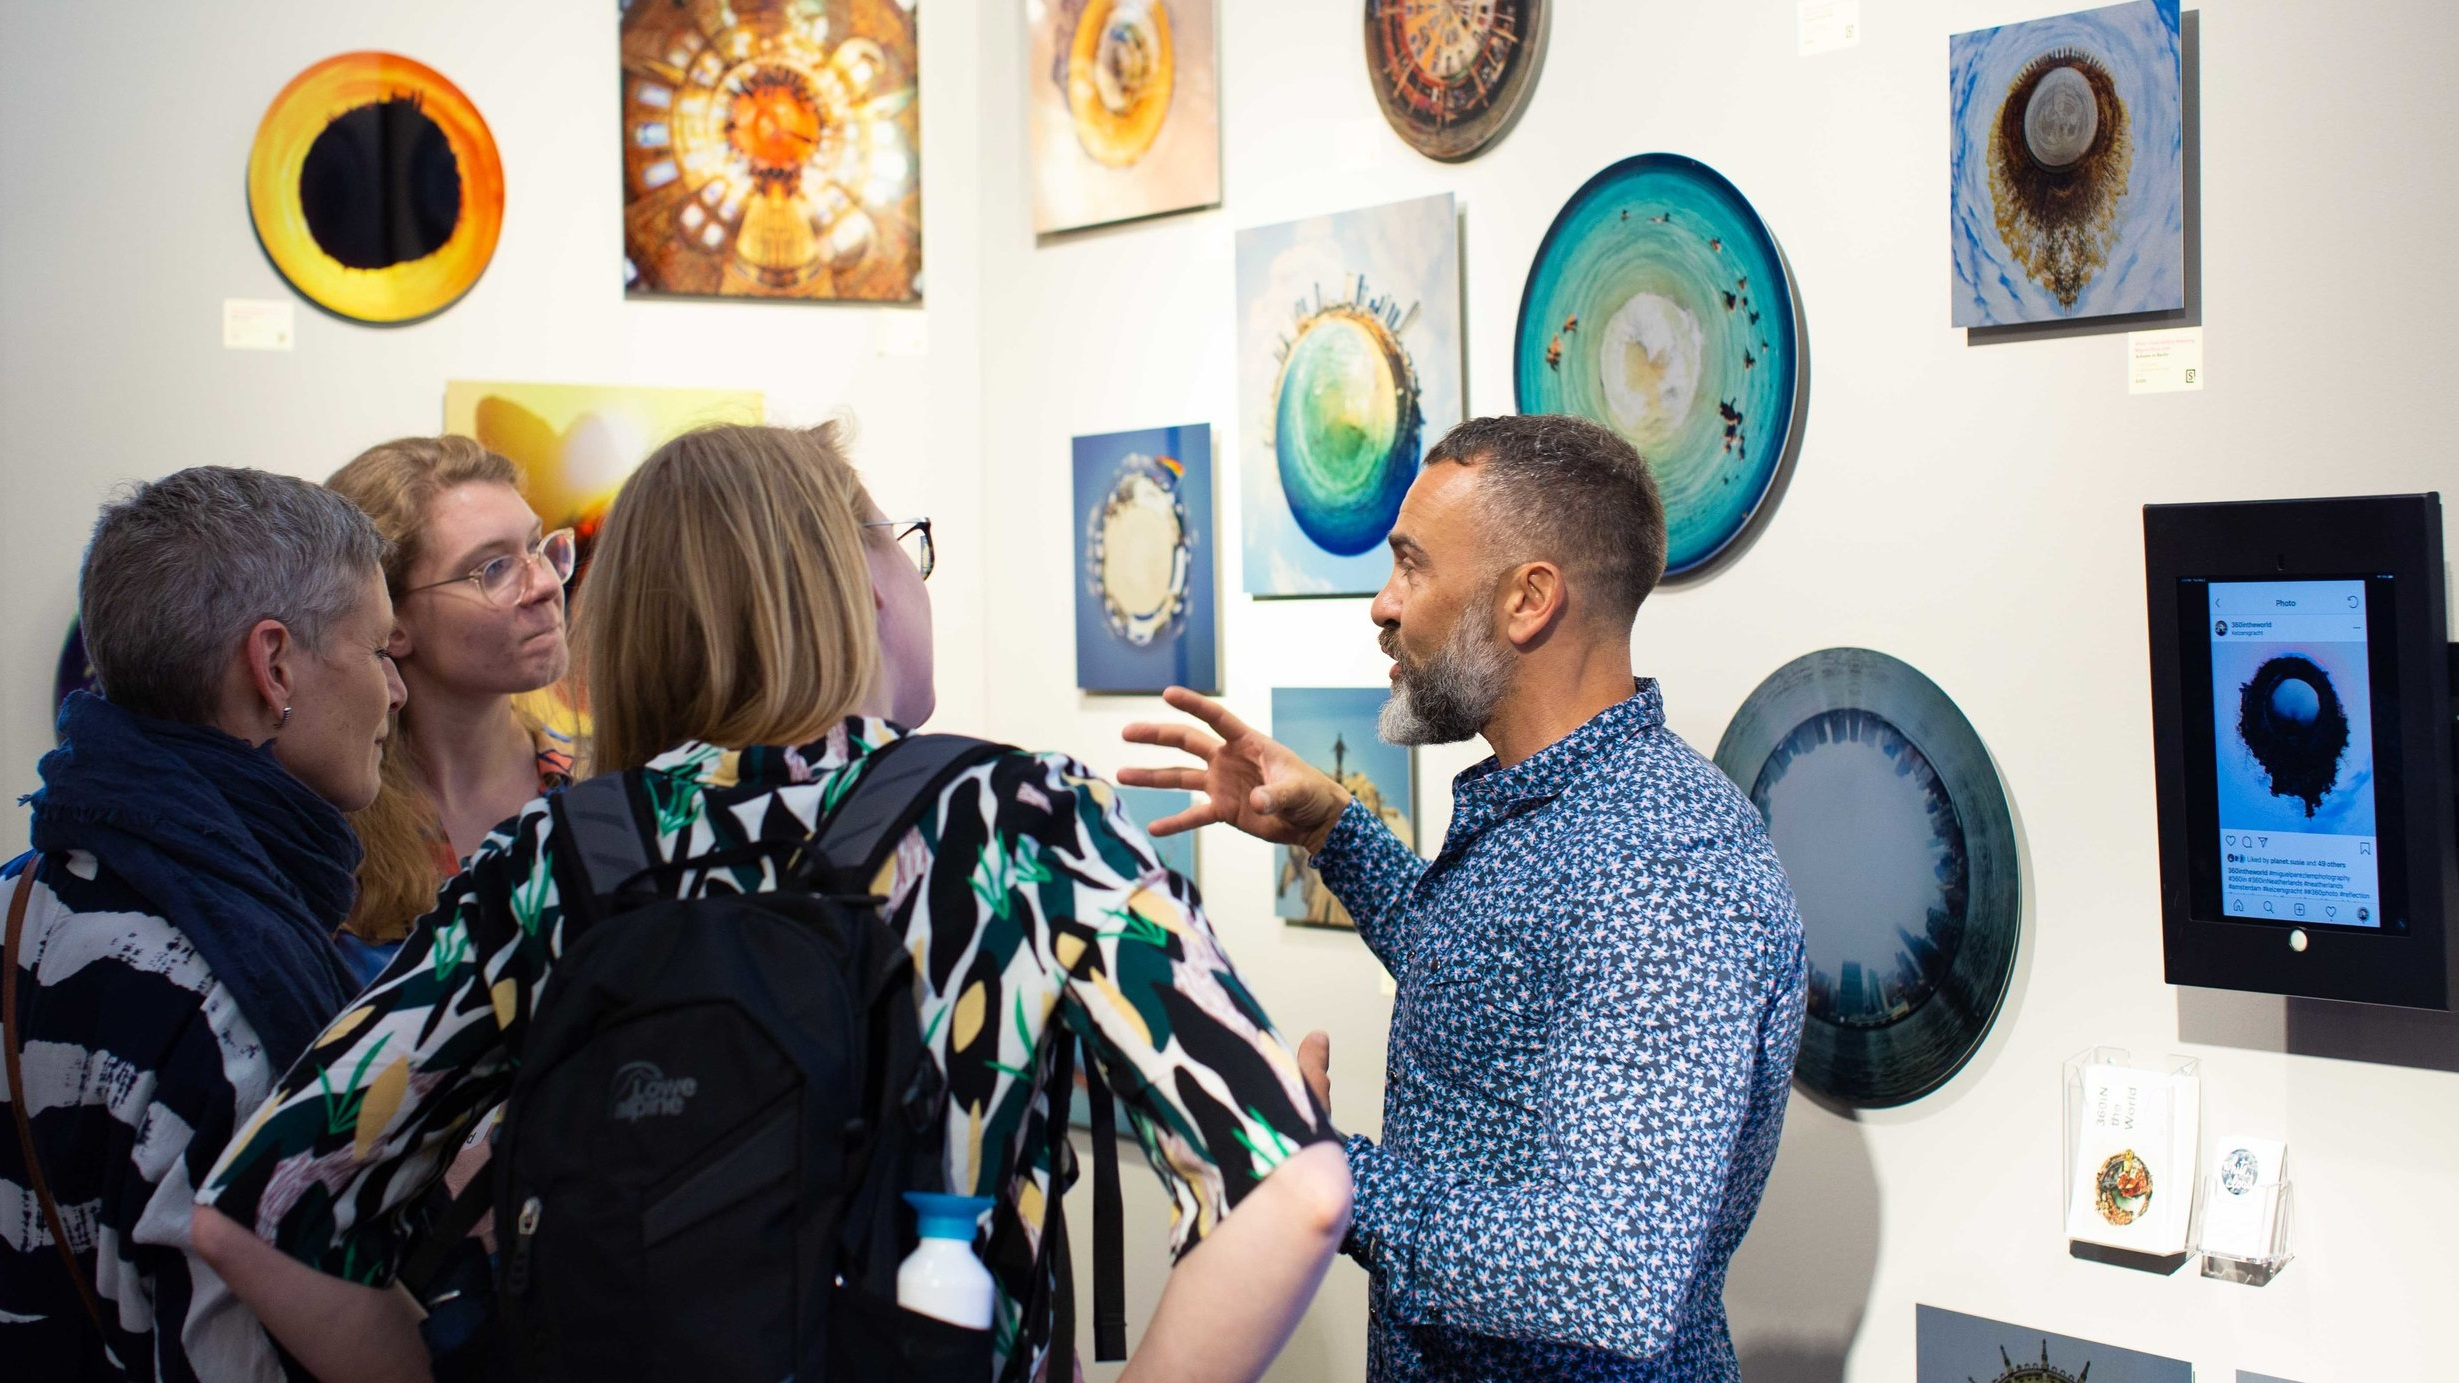 4.29 - 5.2, 2020 - Surrealist ideas and modern mythology provide the backdrop for a diverse fair comprised of artists at the cutting edge of new contemporary art.